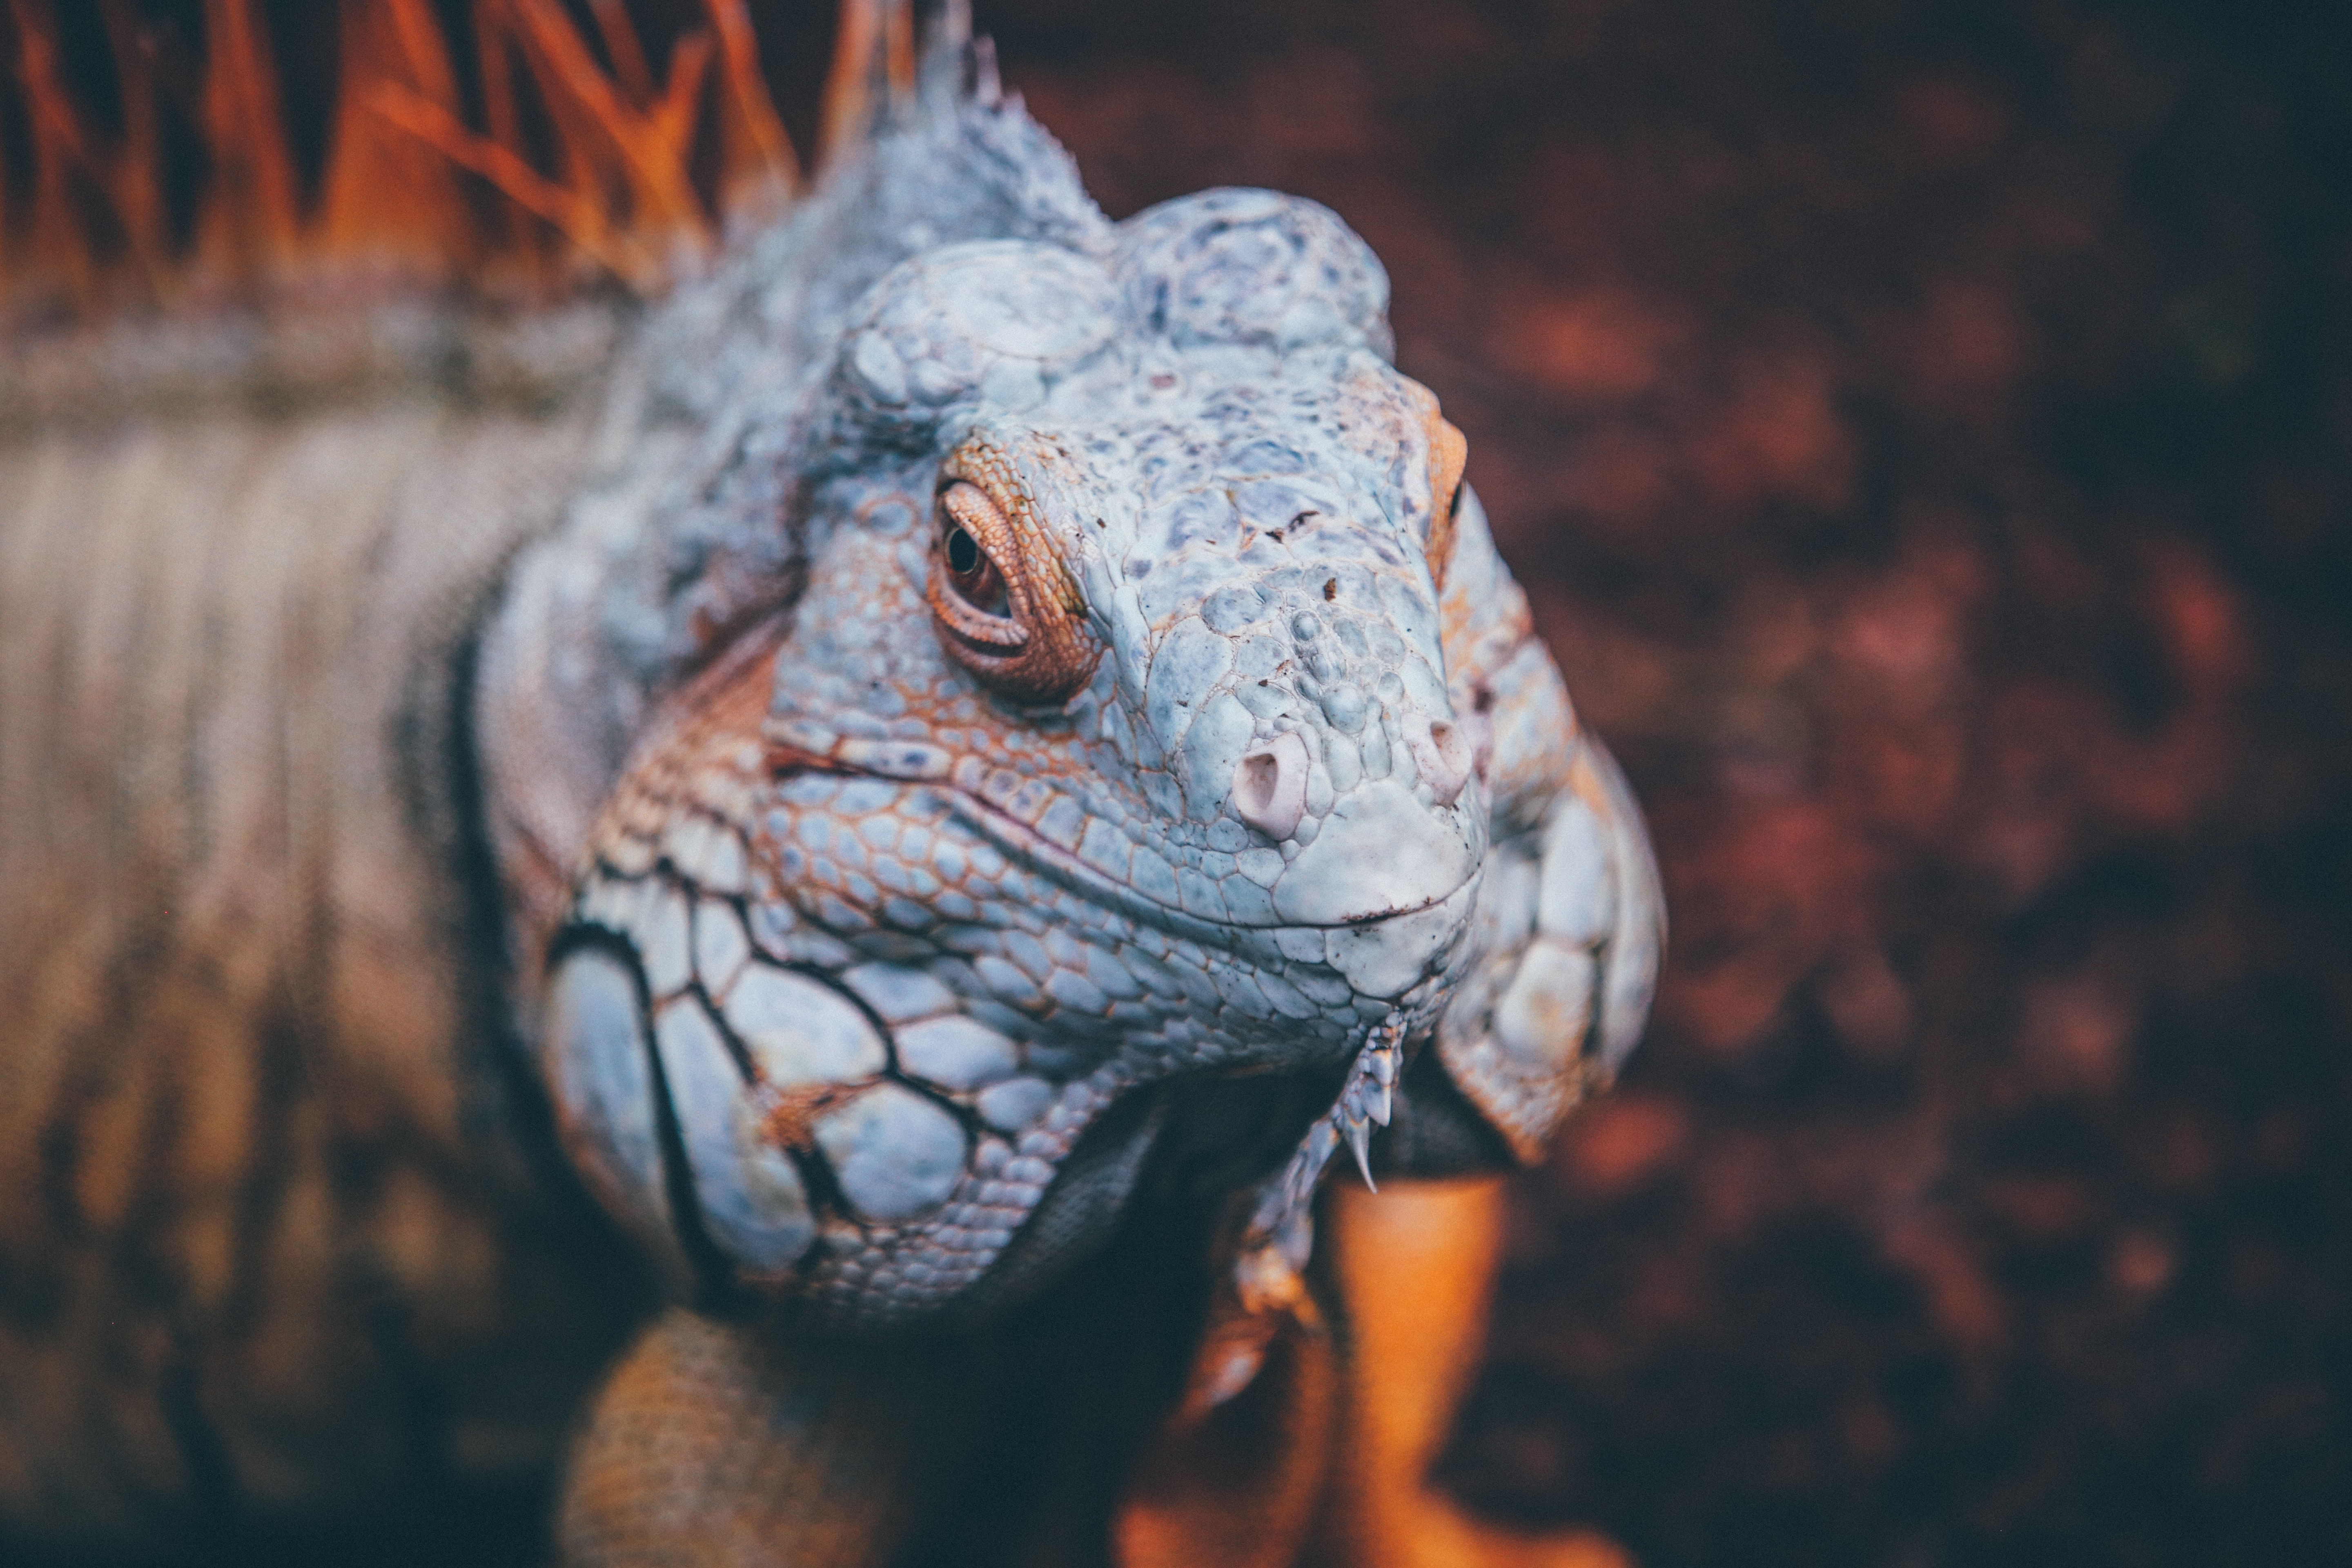 Scaly reptile macro turning its head